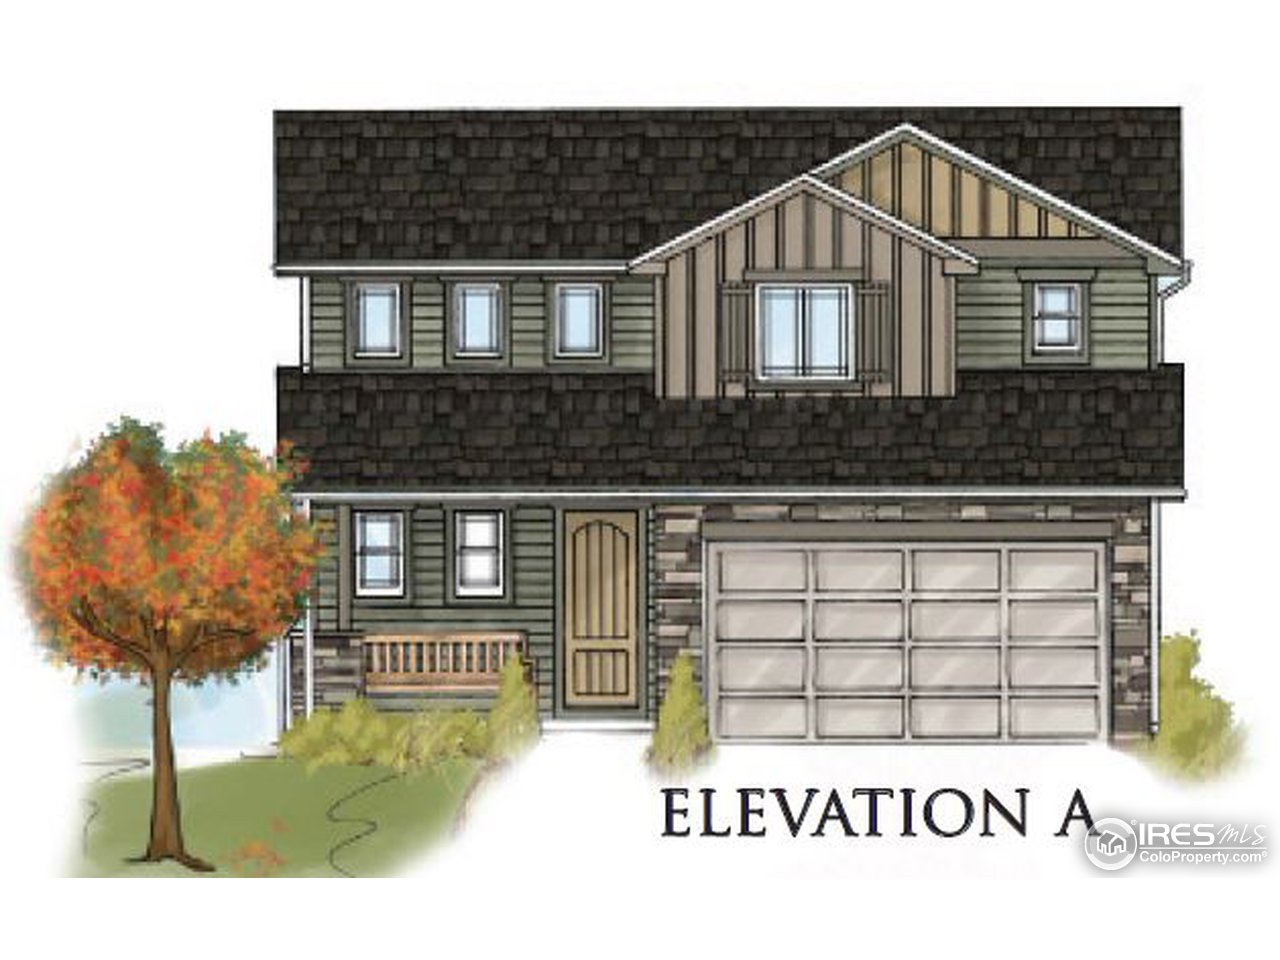 Great opportunity to purchase a brand new Baessler Home in The Point at Promontory.  The Lucca provides a wealth of space to both relax and entertain.  The open concept main floor features a spacious kitchen with island that opens to a dining room/great room.  Upstairs, the spacious master suite boasts a vaulted ceiling, 5-piece bath, and a large walk-in closet along with 2 bedrooms and a multipurpose loft.  Home will be complete late-February, other quick delivery homes and presales available.